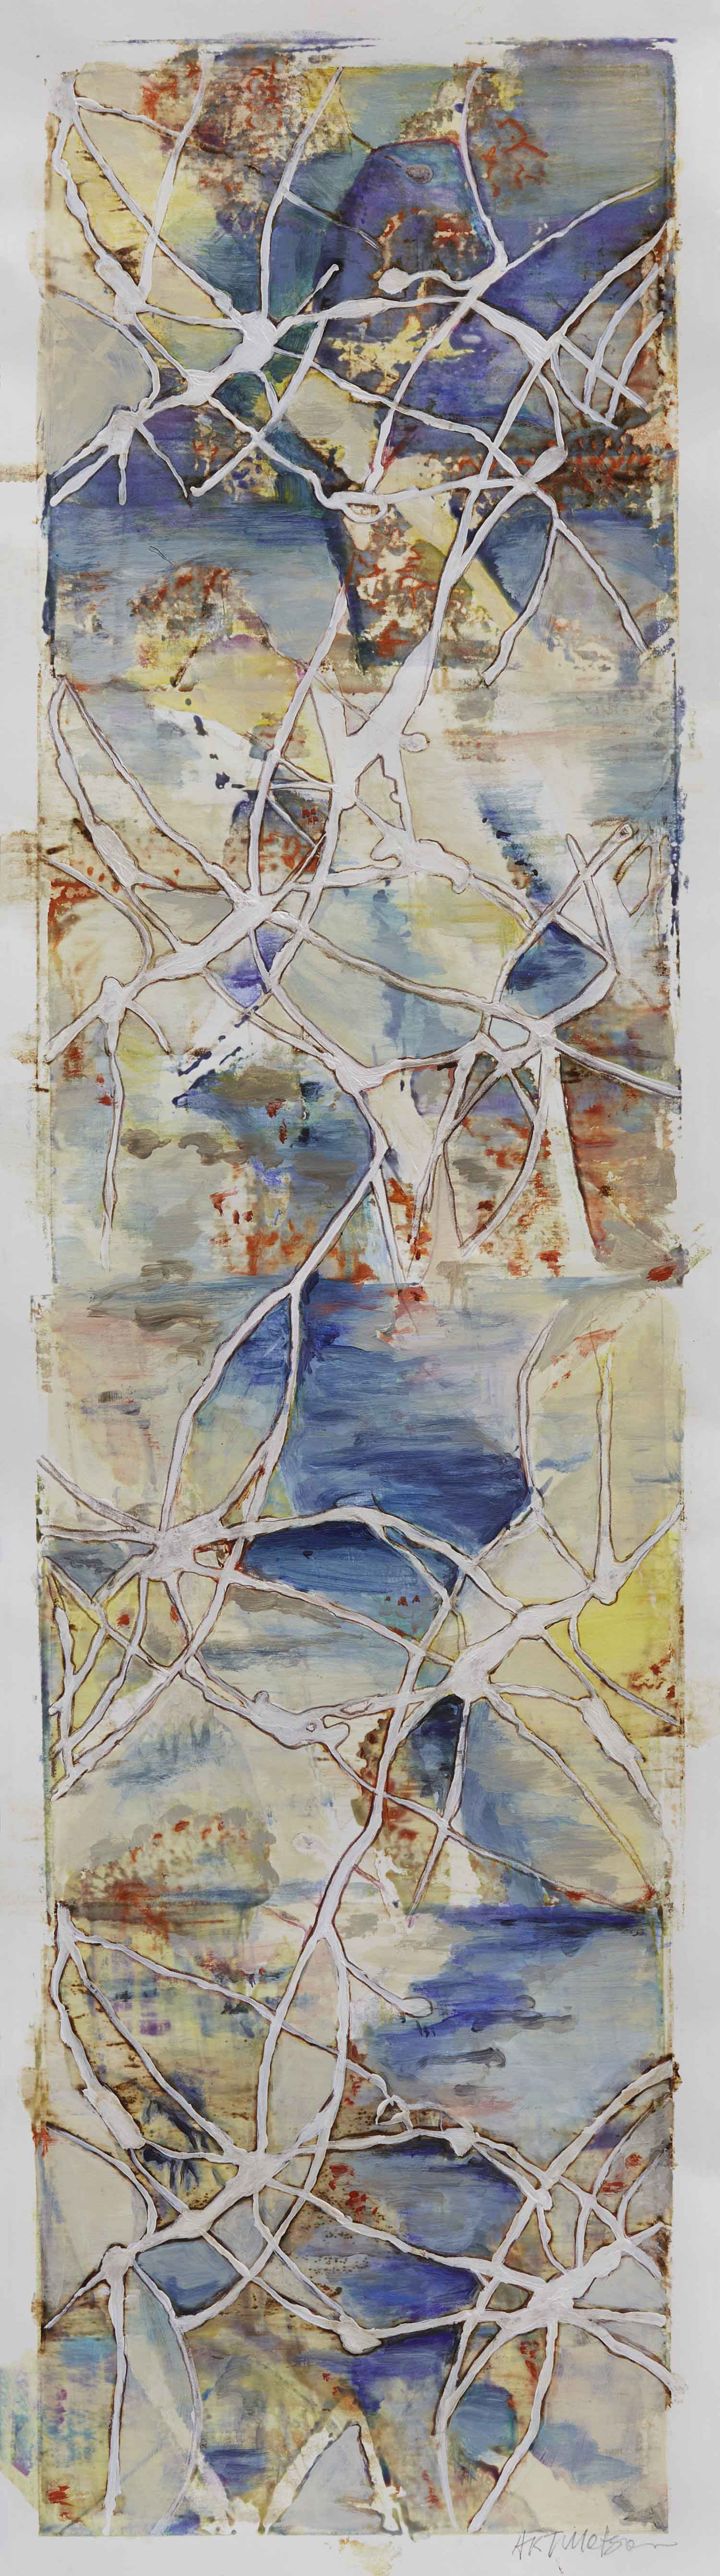 Chasing the Stream by St. Paul, MN multimedia artist, Amy Tillotson